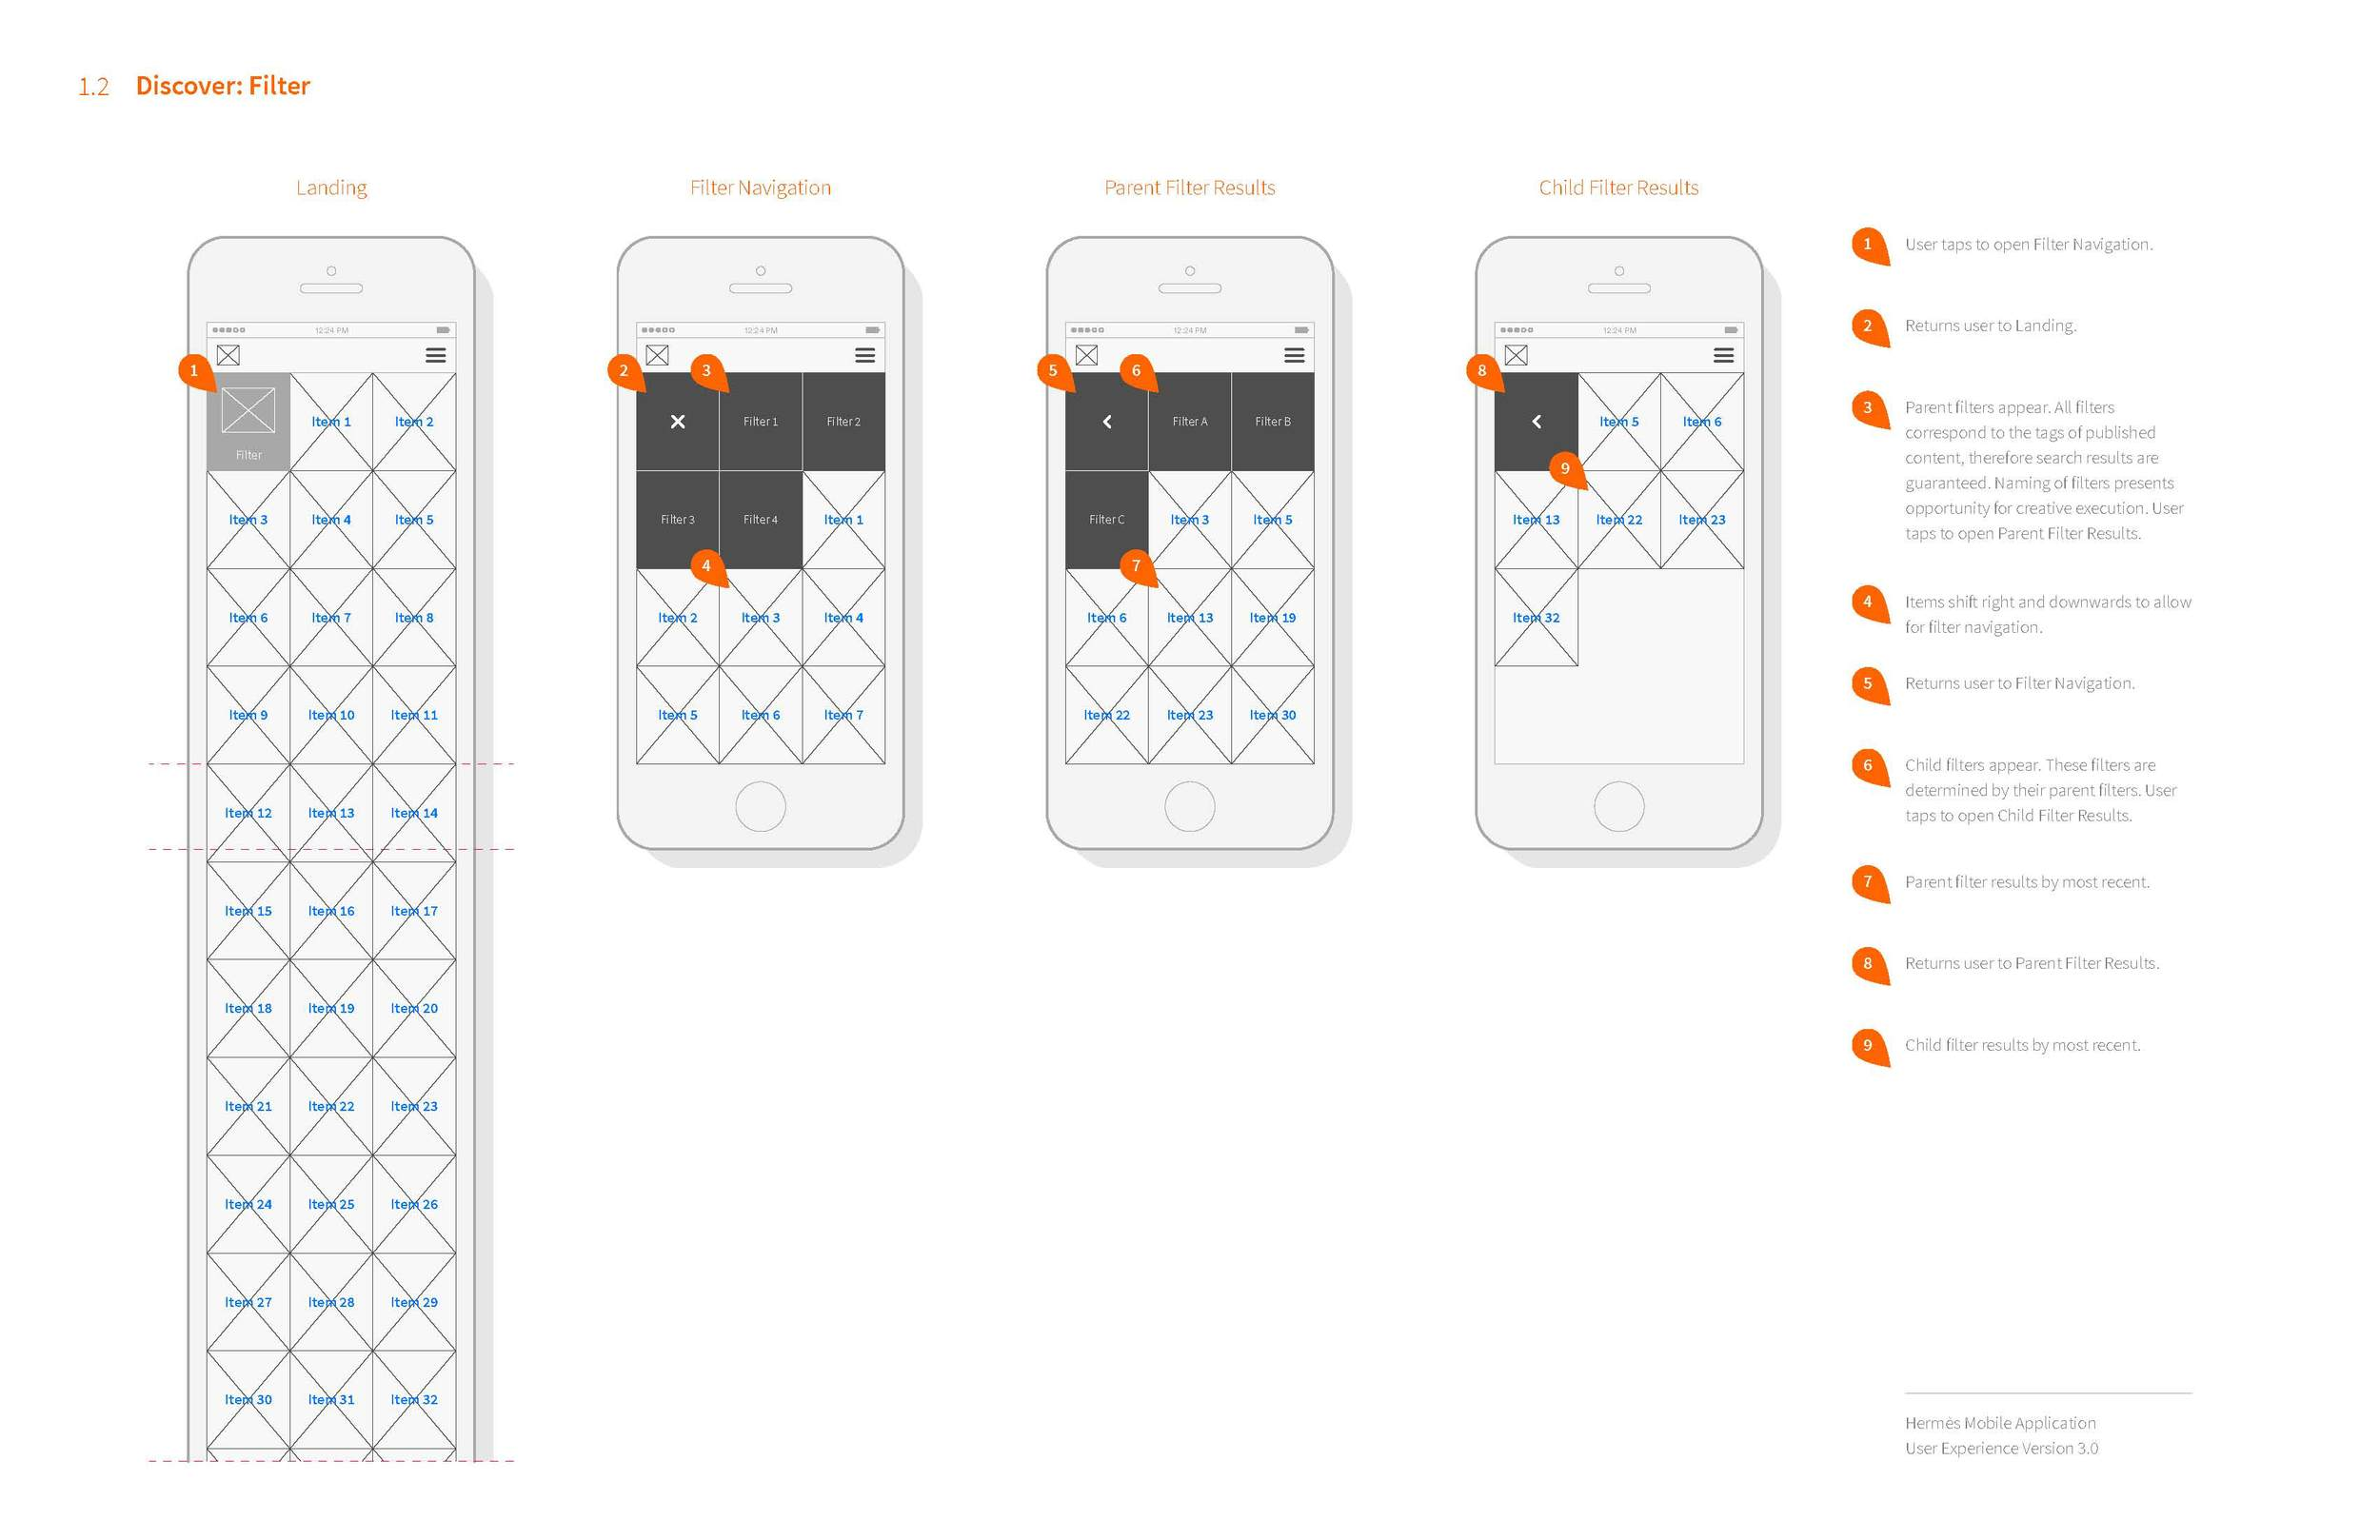 hermes-caraousel-wireframes_Page_08.jpg